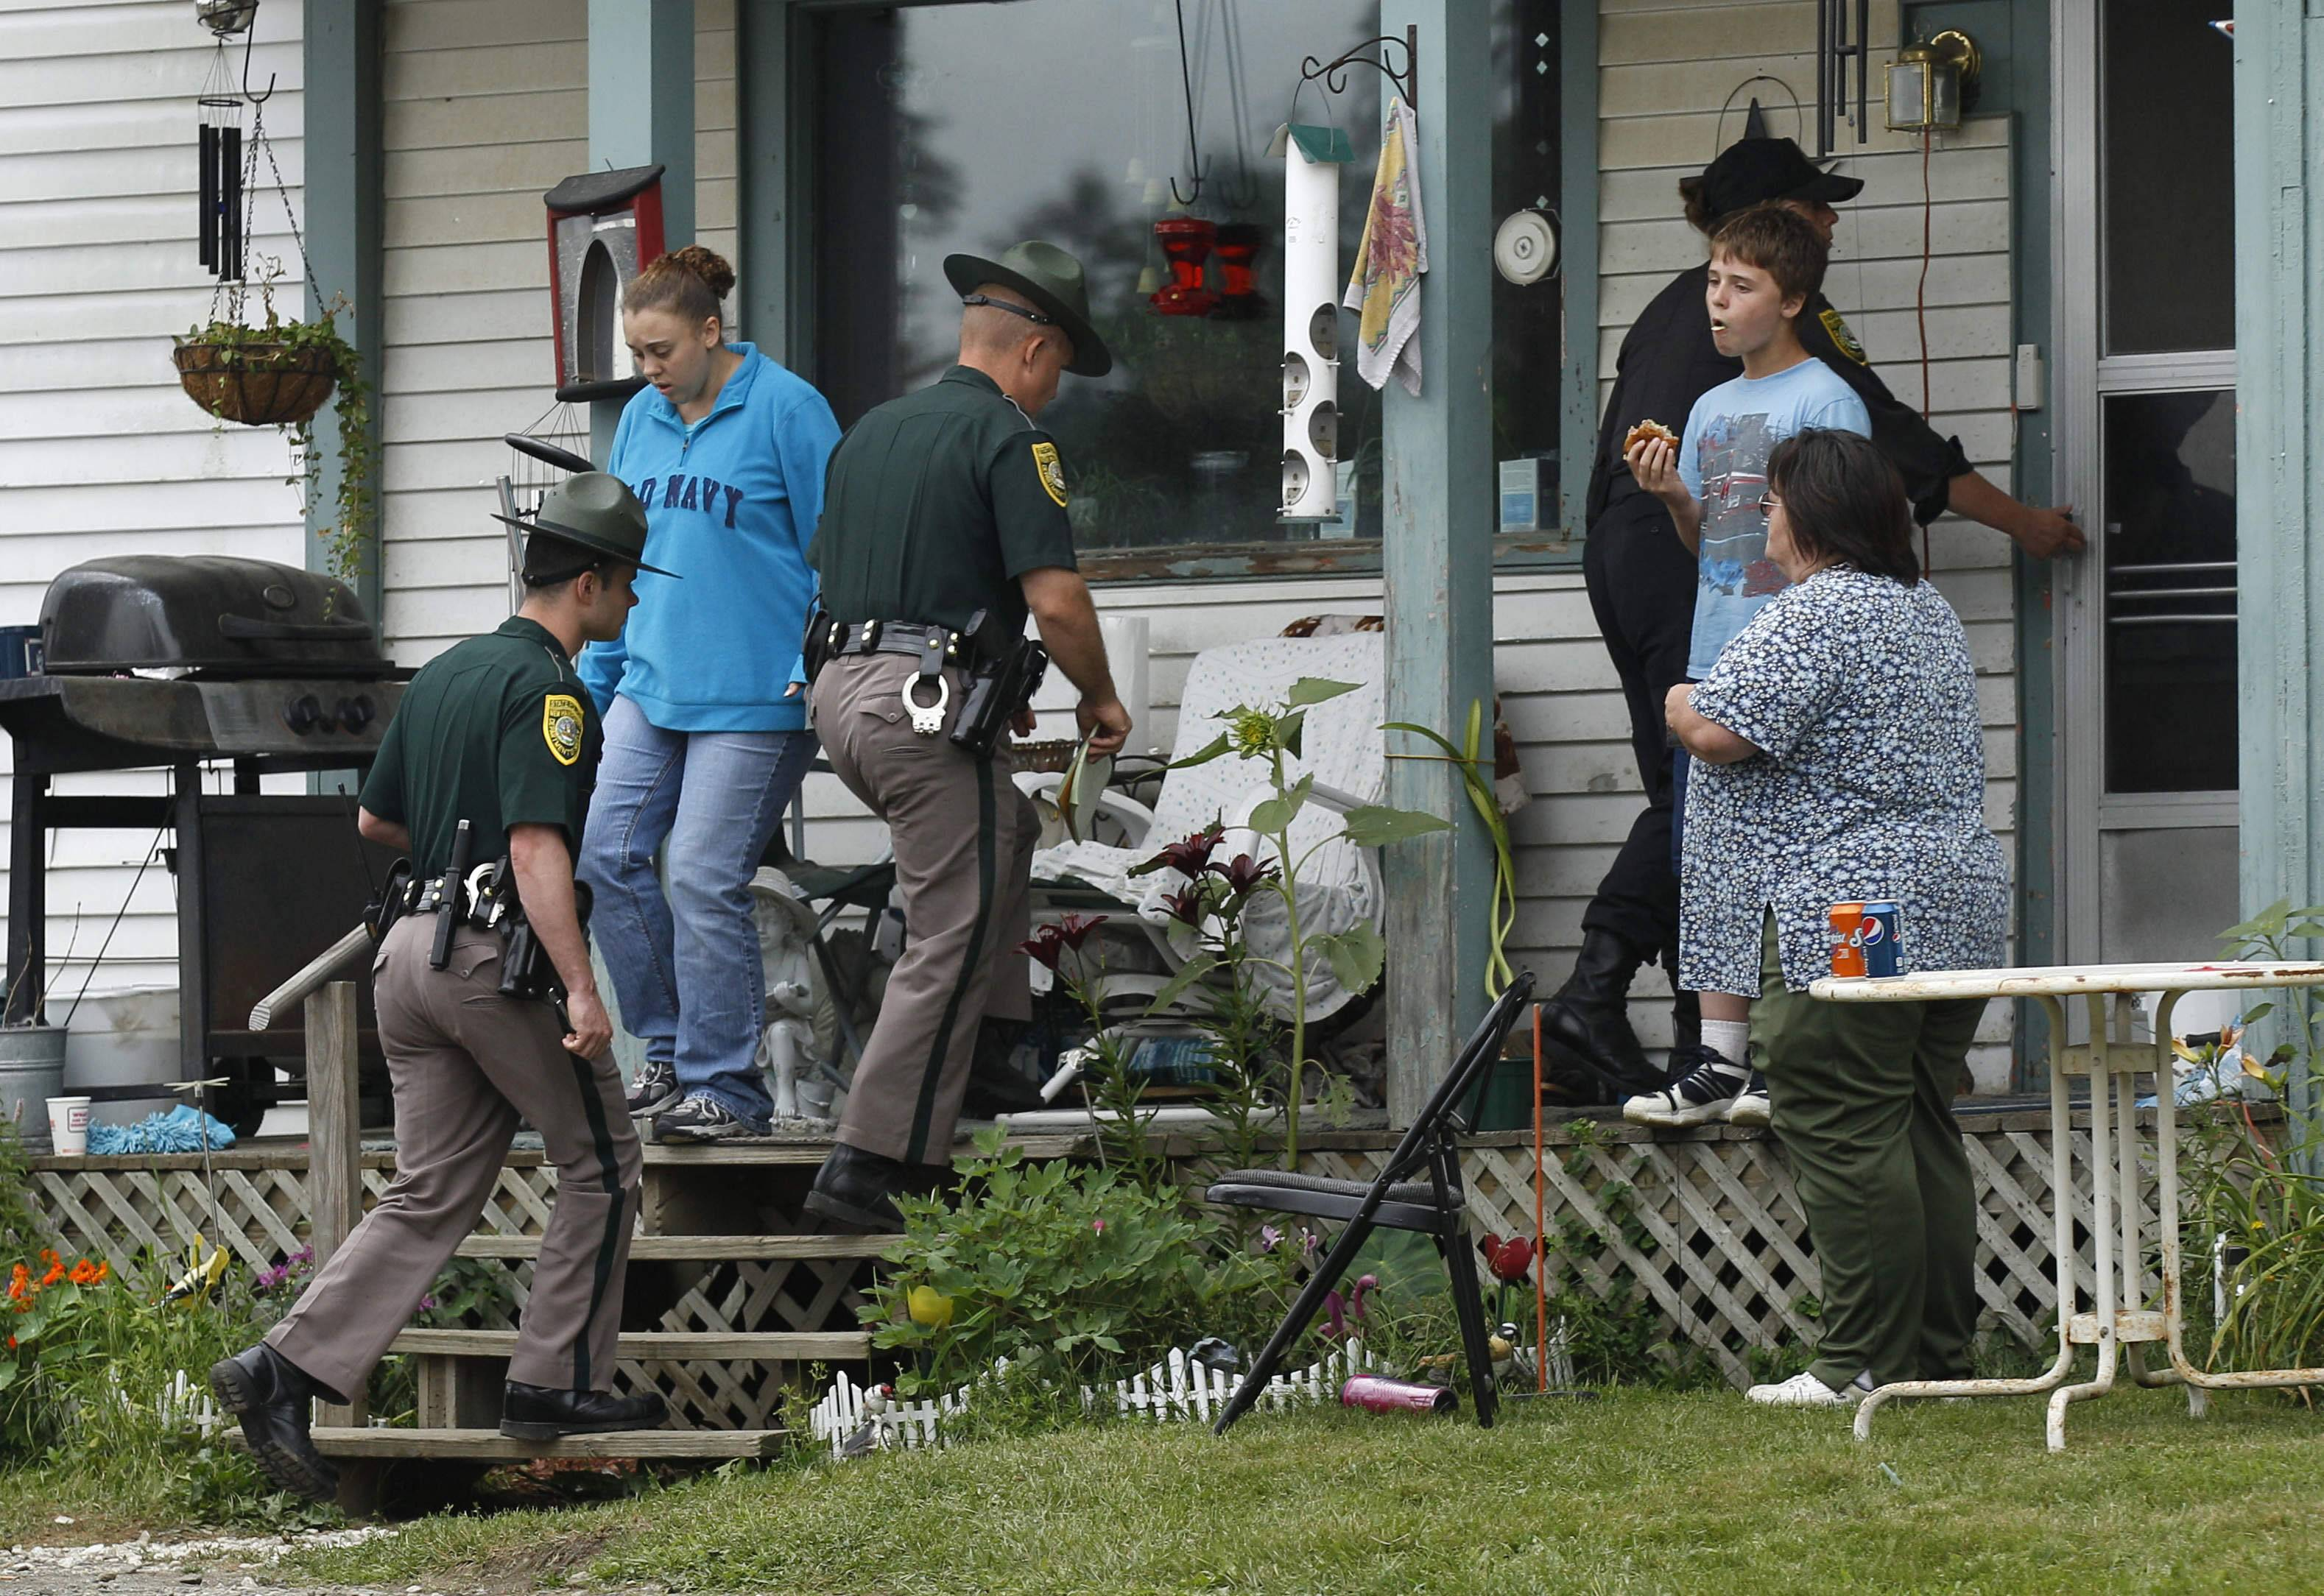 On Wednesday July 27, 2011, New Hampshire State Police Troopers enter the family home of Celina Cass in Stewartstown, N.H. It has been almost three years since the 11-year-old body was found in the Connecticut River. Investigators remain silent about the details of Celina's death except to call it a homicide.